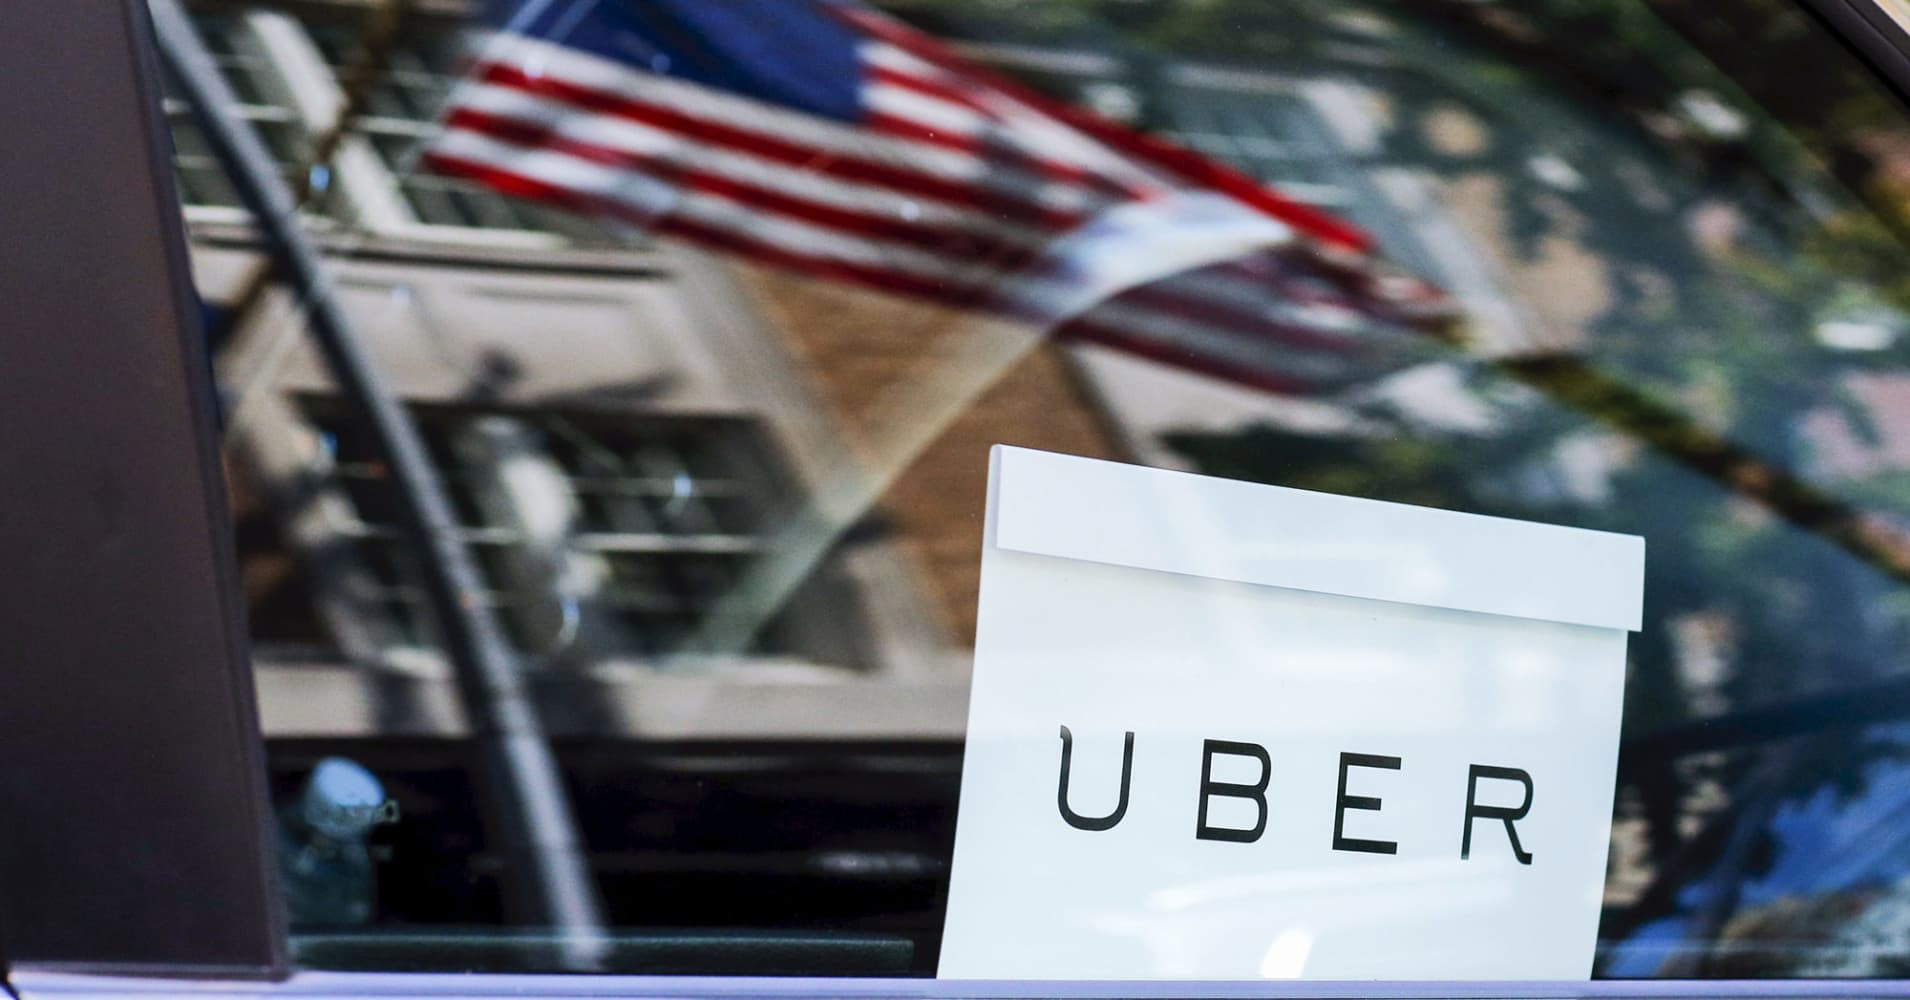 New York City wants information about where Uber is taking you, the company says